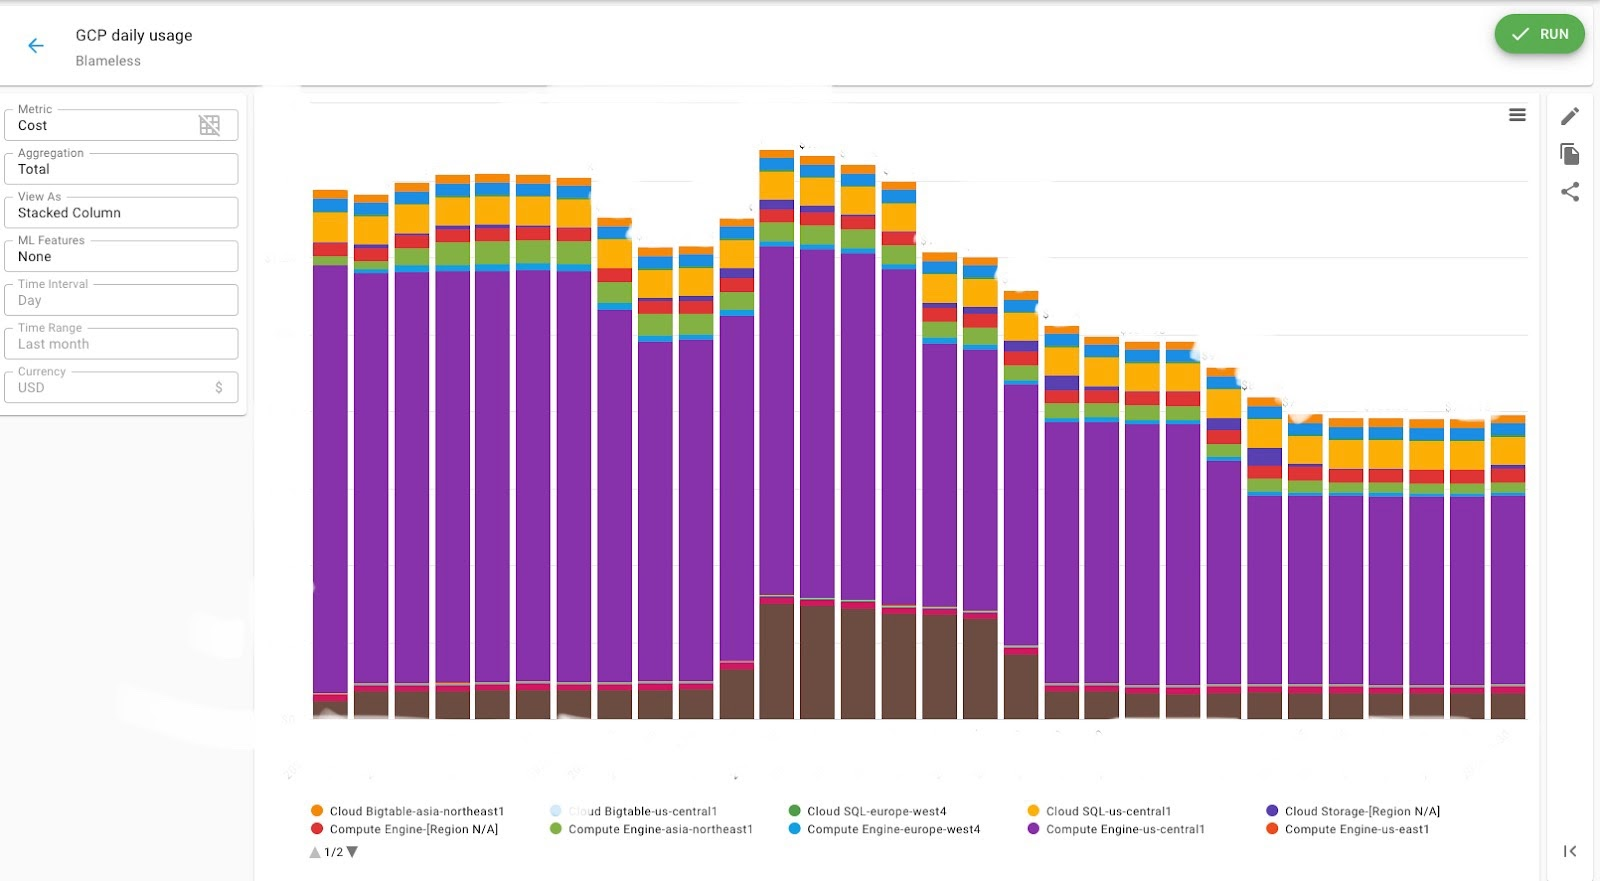 Graph of GCP daily usage costs declining